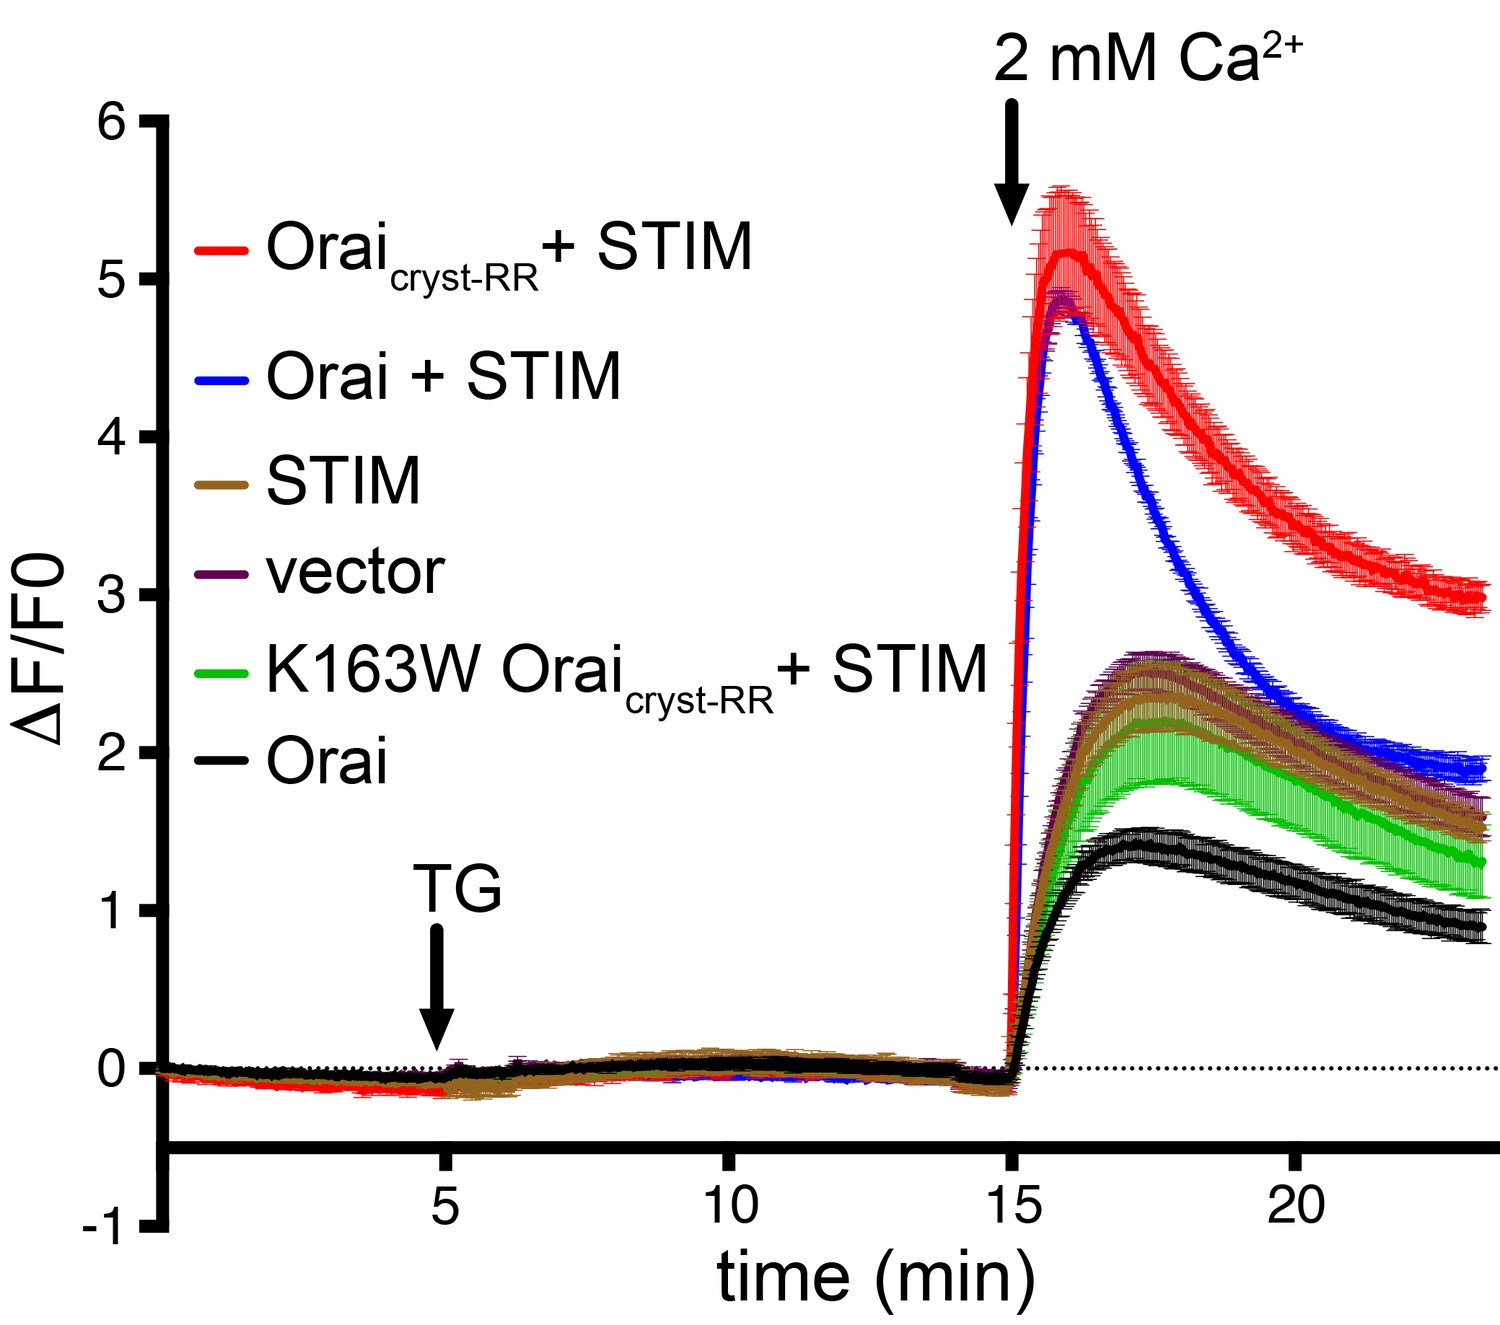 Structures Reveal Opening Of The Store Operated Calcium Channel Orai Led Driver 6 Channels With Phase Shift Control Ca2 Influx Measurements Show That Drosophila Constructs Function As Crac When Co Expressed Stim